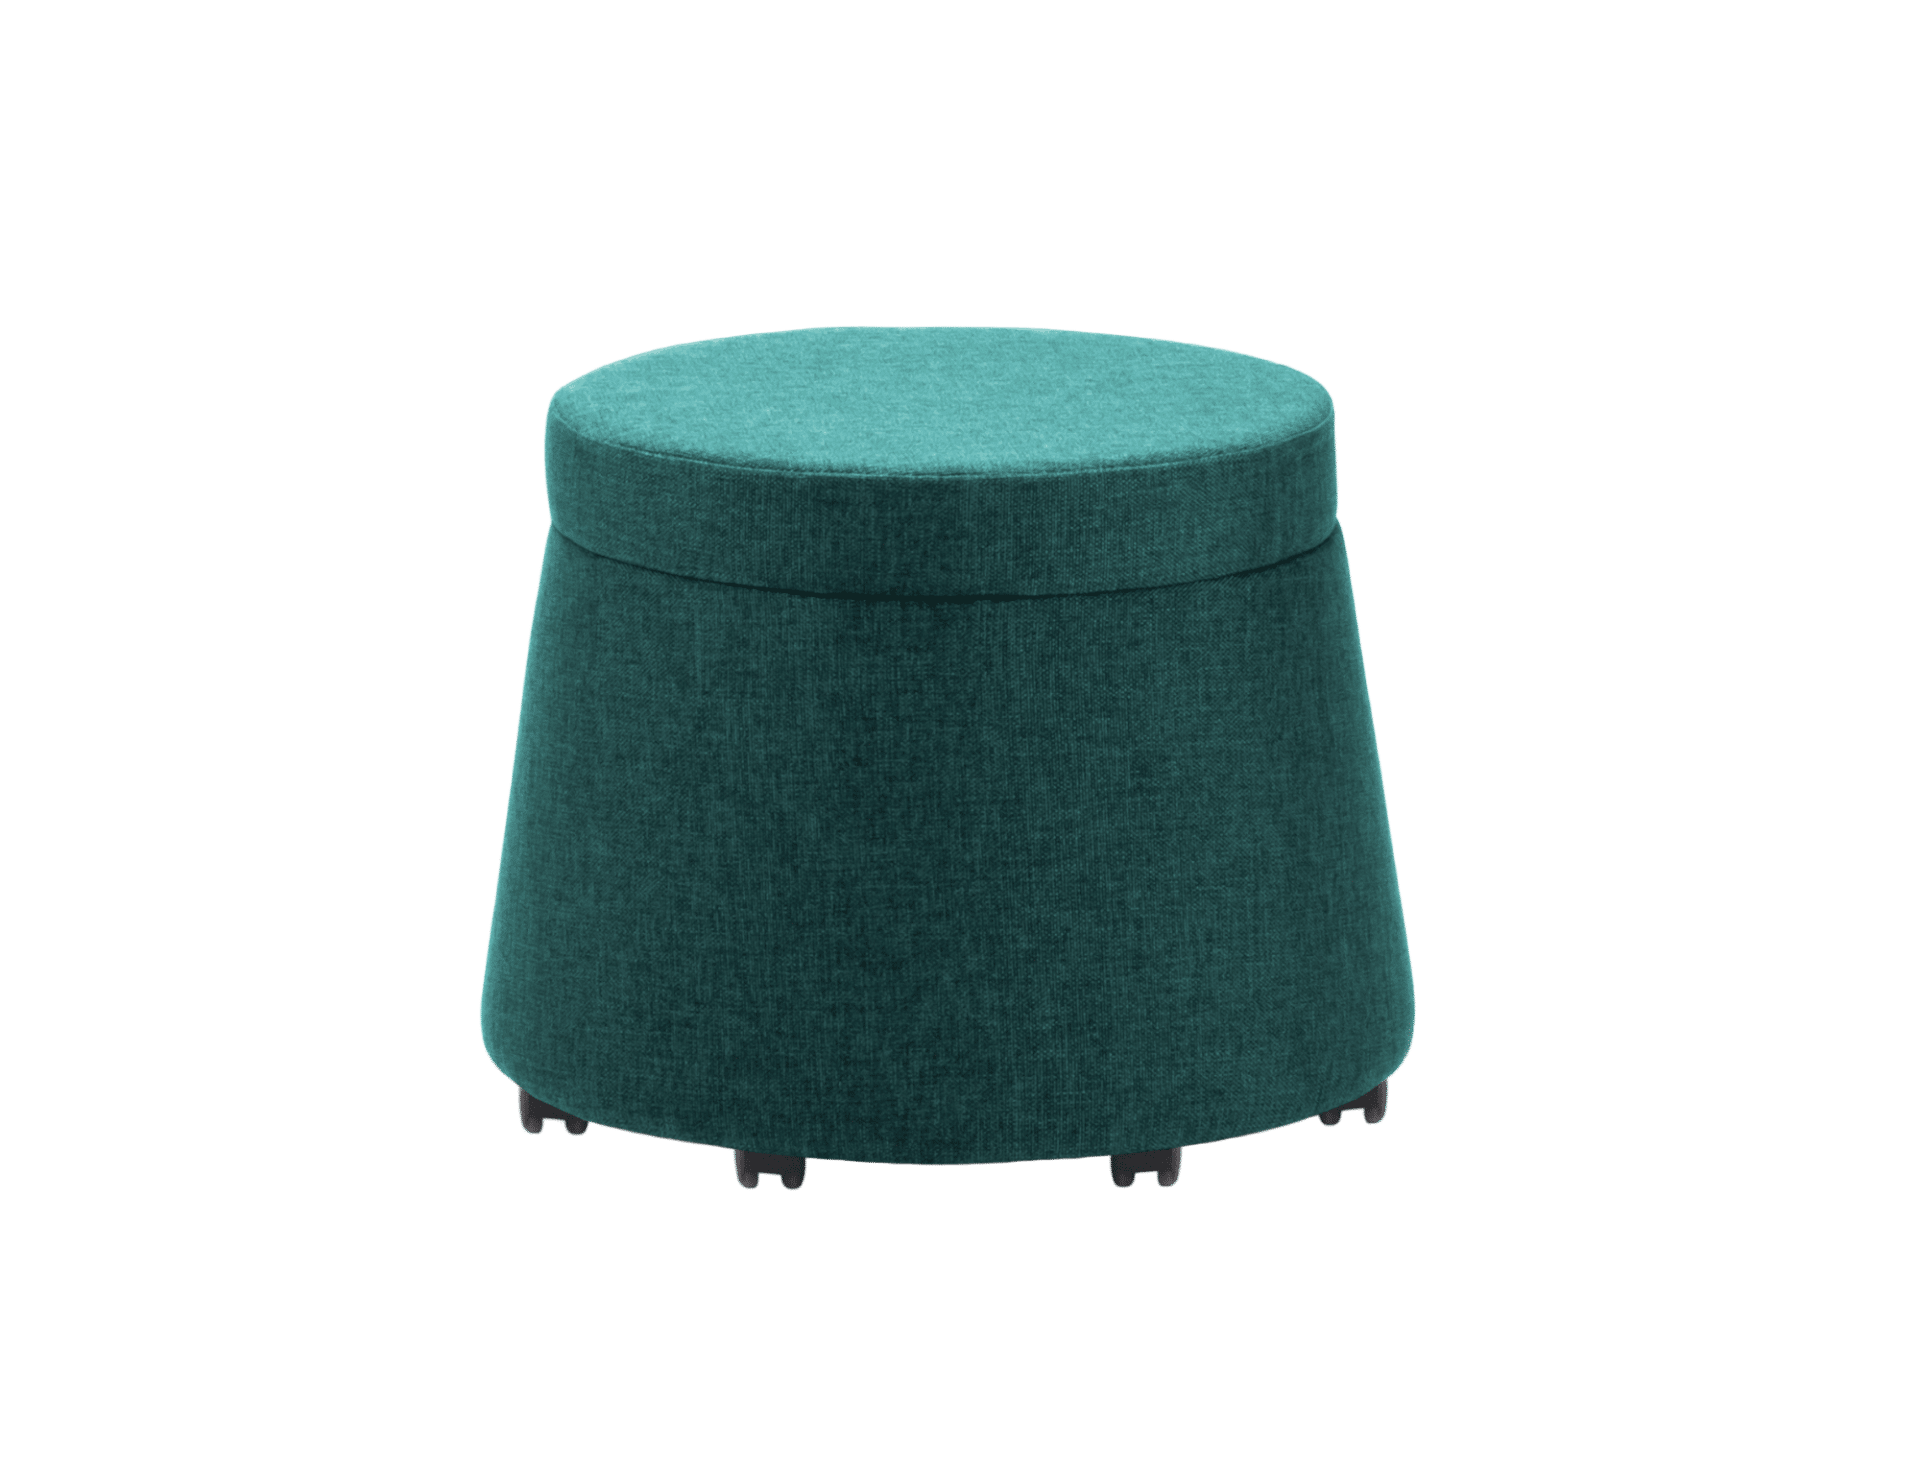 products_robot_ottoman_6